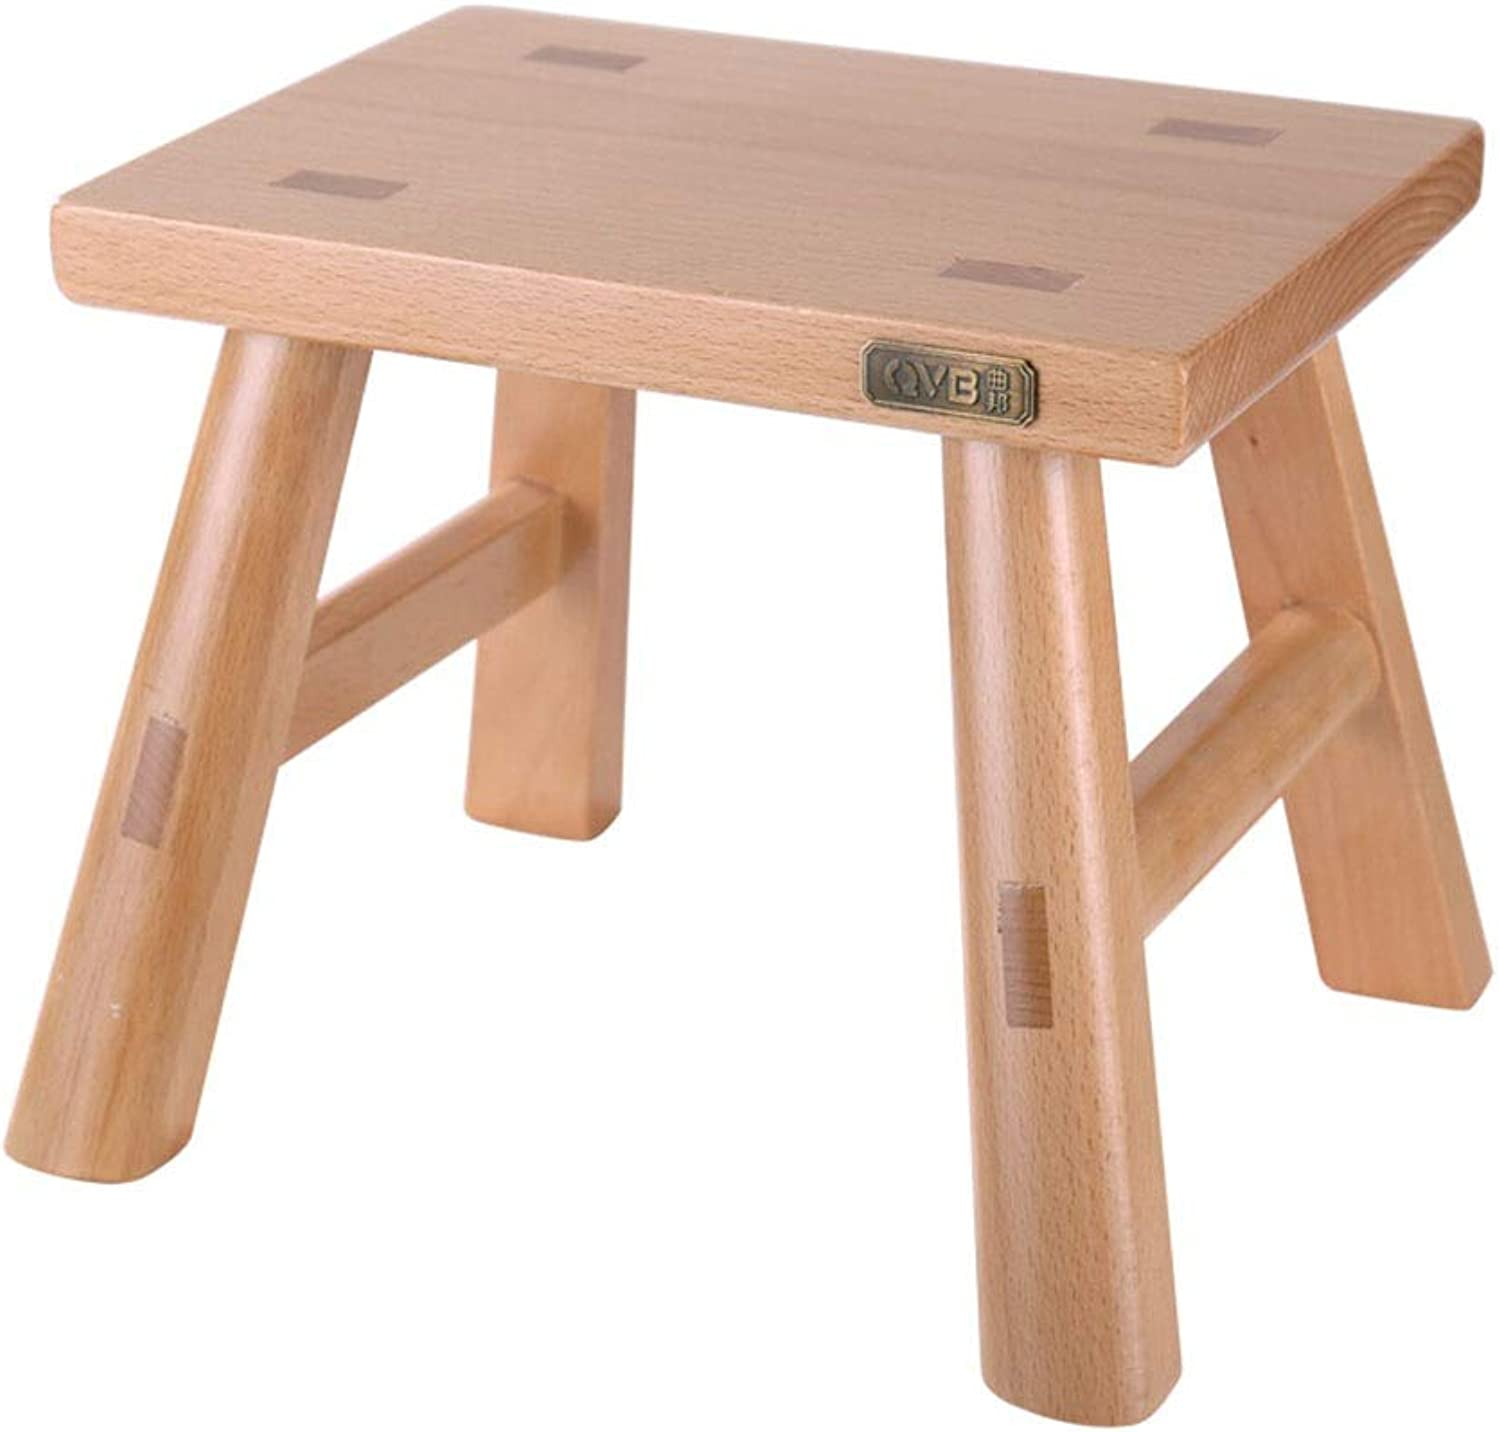 Small Stool-Leisure Stool Square Stool Fashion Stool Bathroom Stool Oak Small Bench Adult shoes Bench Solid Wood FENPING (color   Walnut color, Size   28  20  24cm)